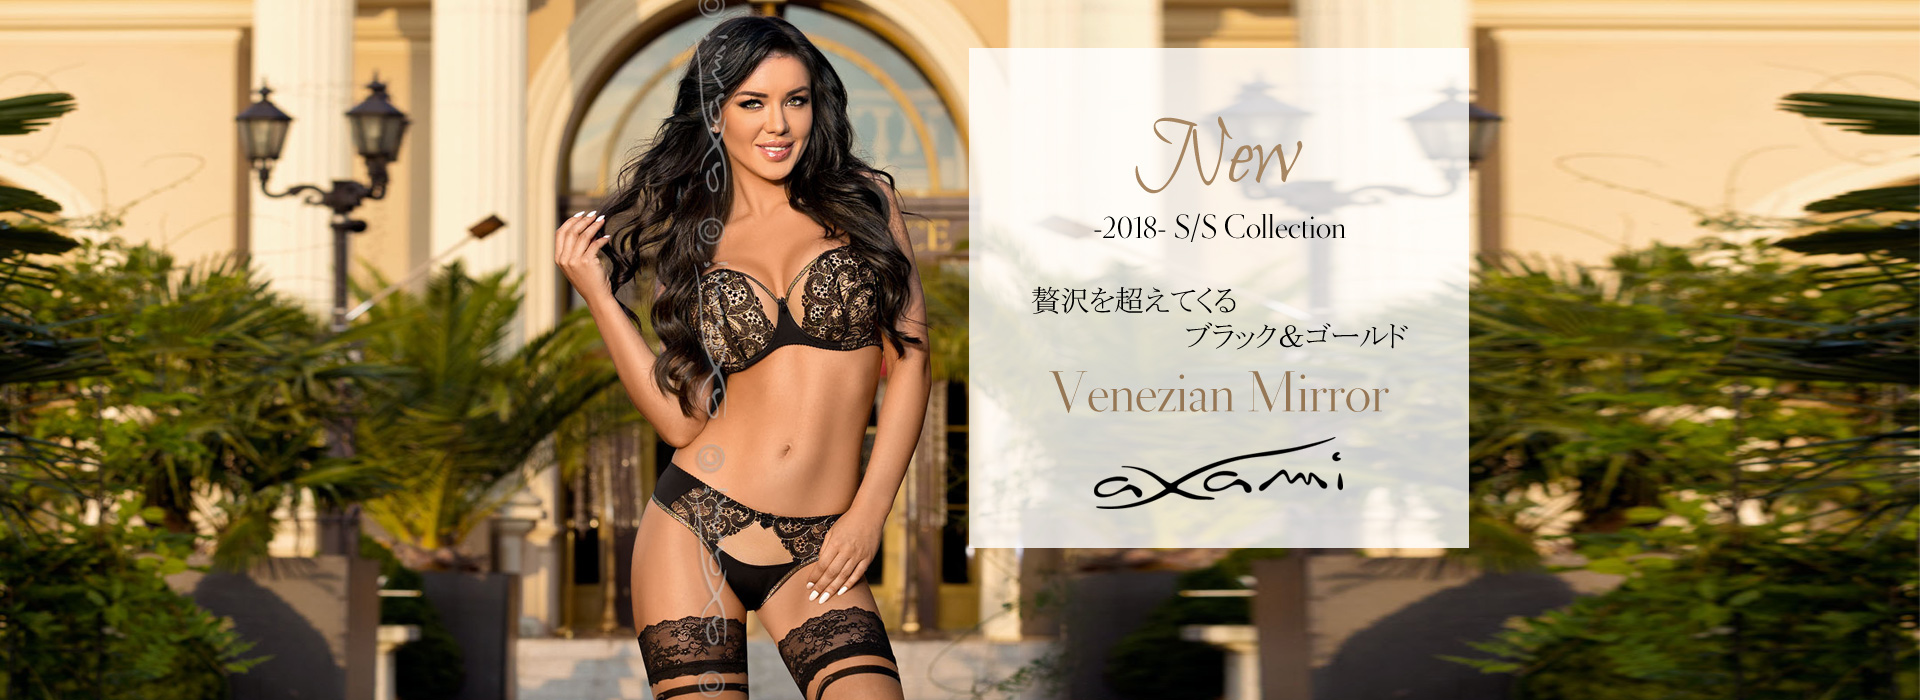 アクサミ[Axami Luxury] Venetian Mirror Collection -2018-